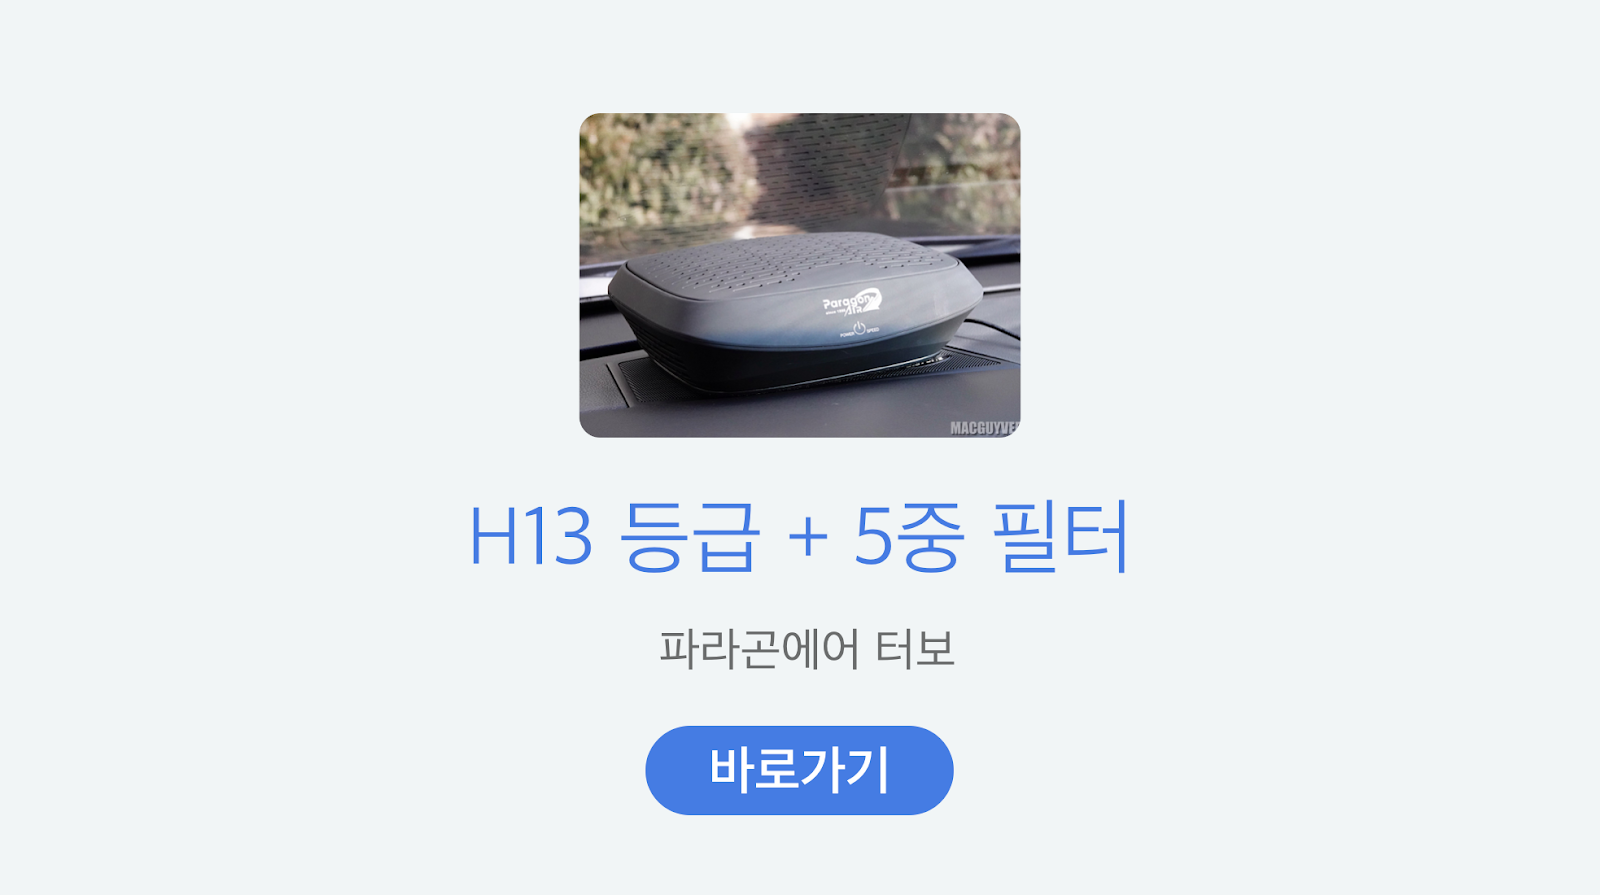 https://smartstore.naver.com/paragonwater/products/3744923935